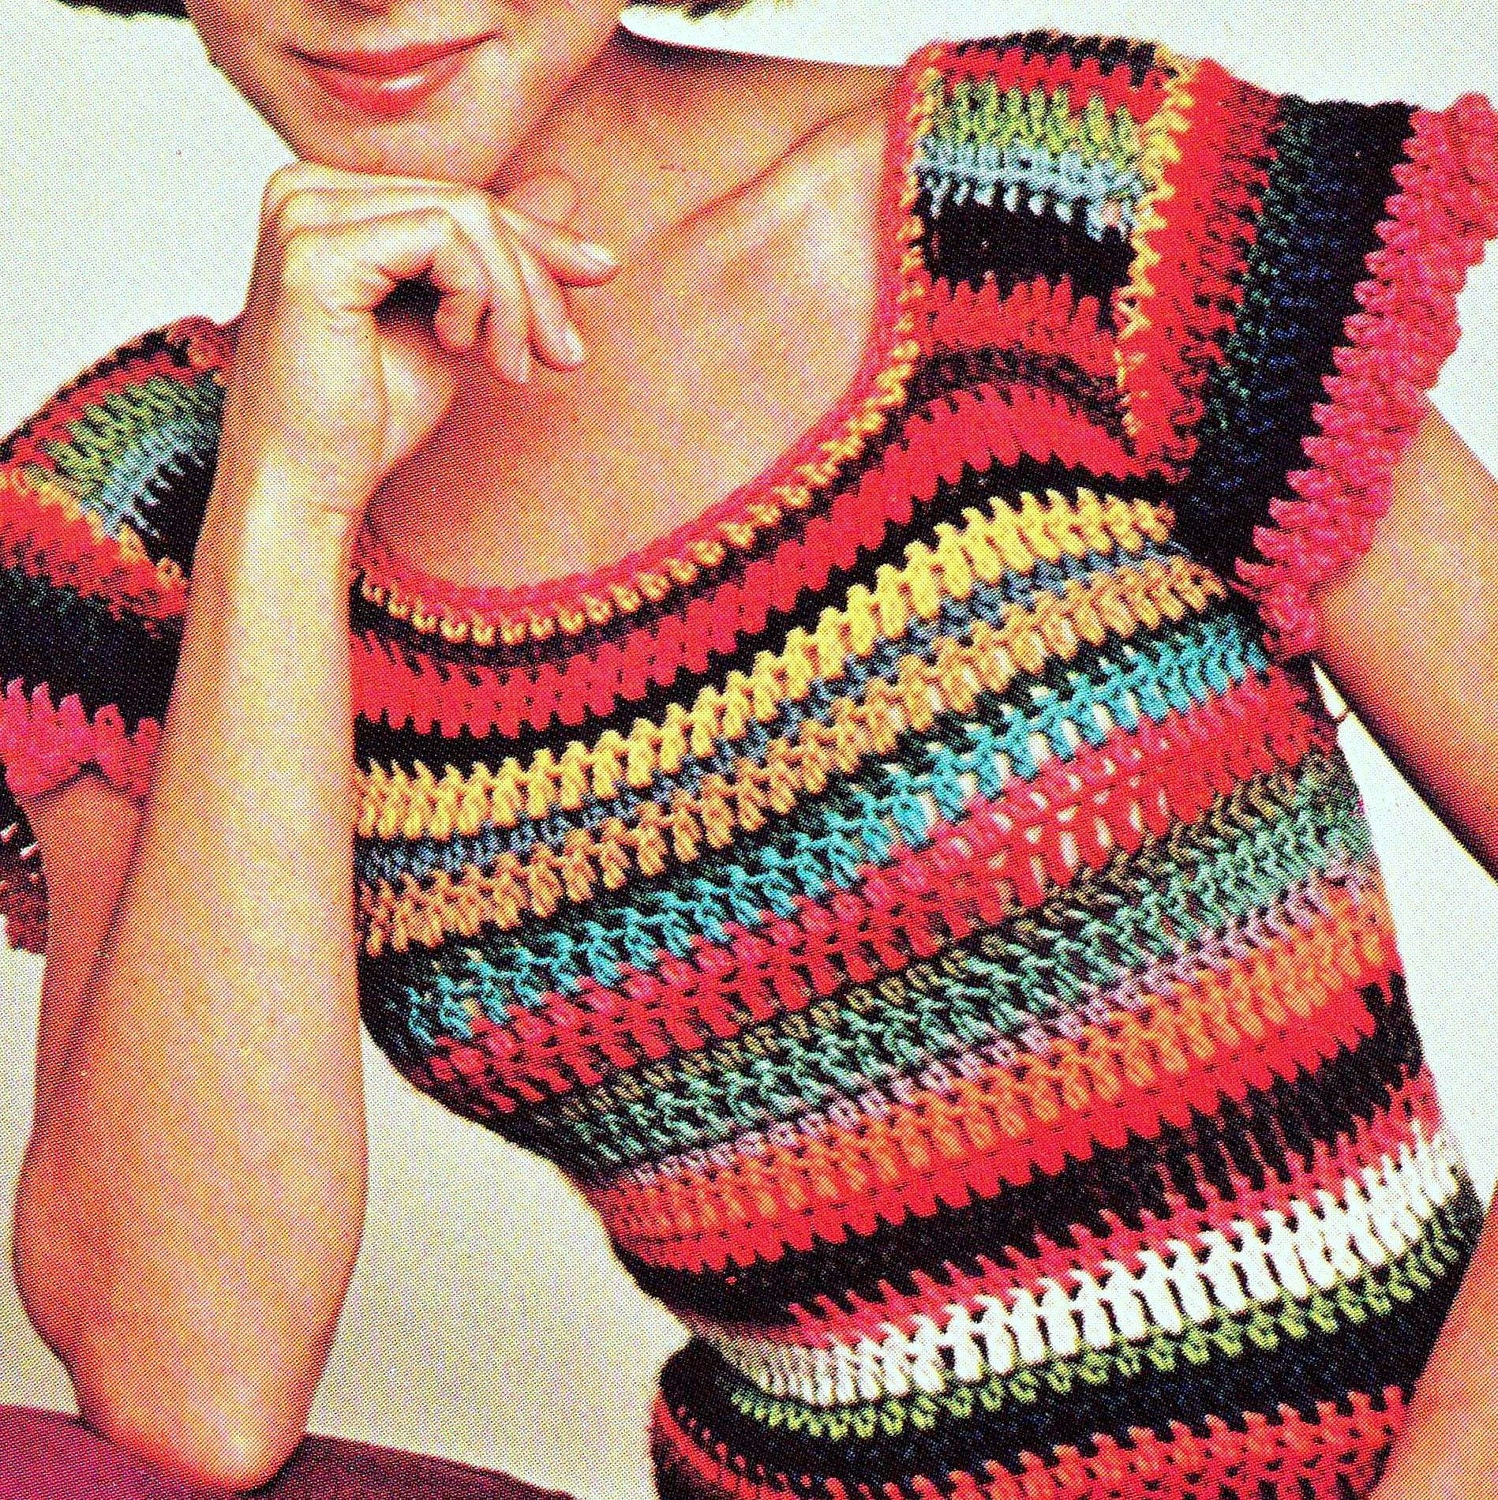 Crochet Patterns Pdf Free Download : INSTANT DOWNLOAD PDF Crochet Pattern Cap Sleeved Top Blouse Vintage ...